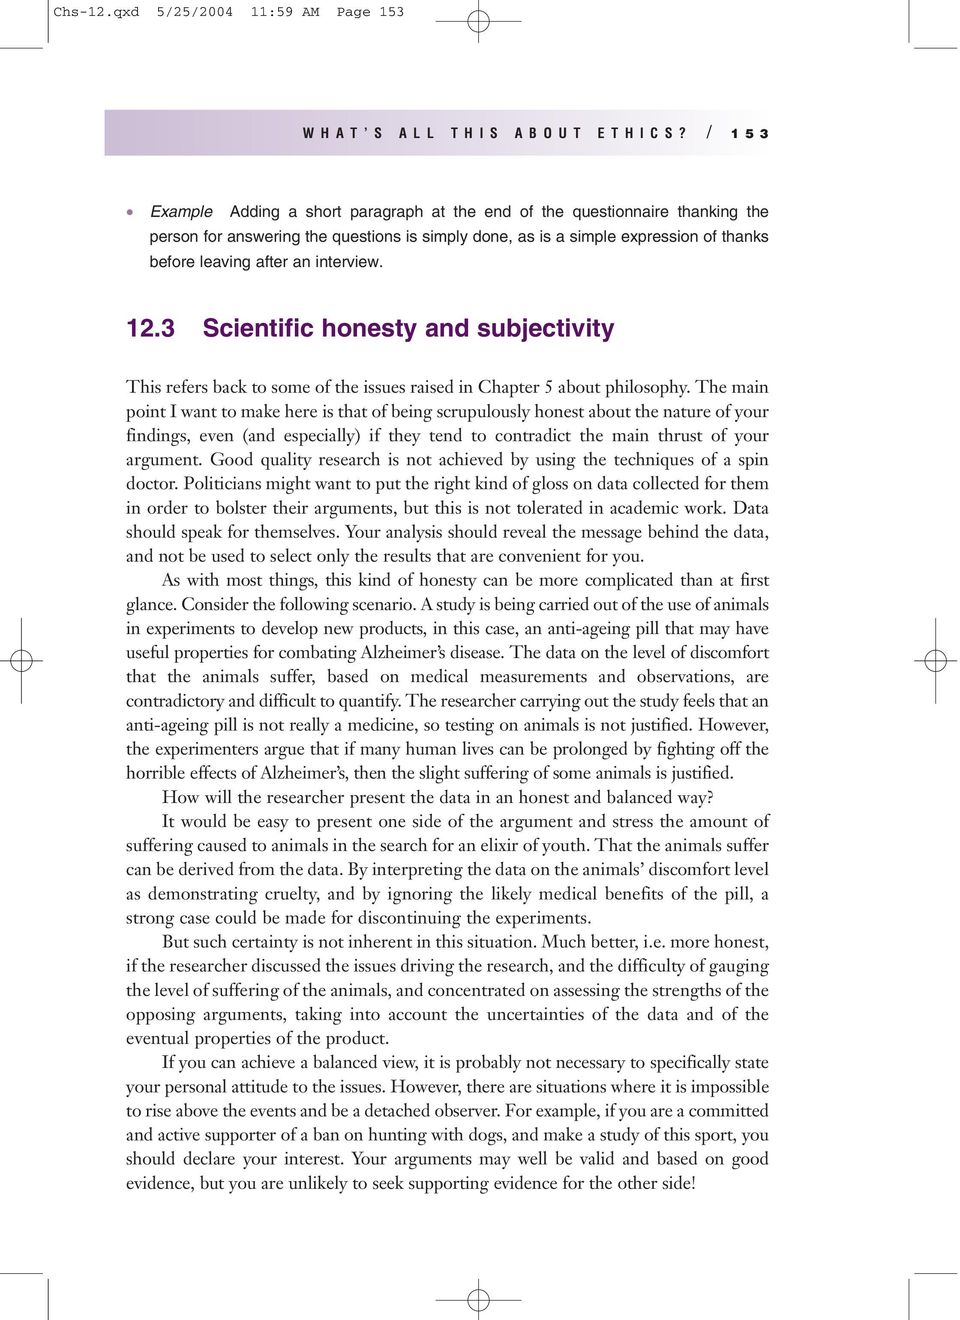 interview. 12.3 Scientific honesty and subjectivity This refers back to some of the issues raised in Chapter 5 about philosophy.